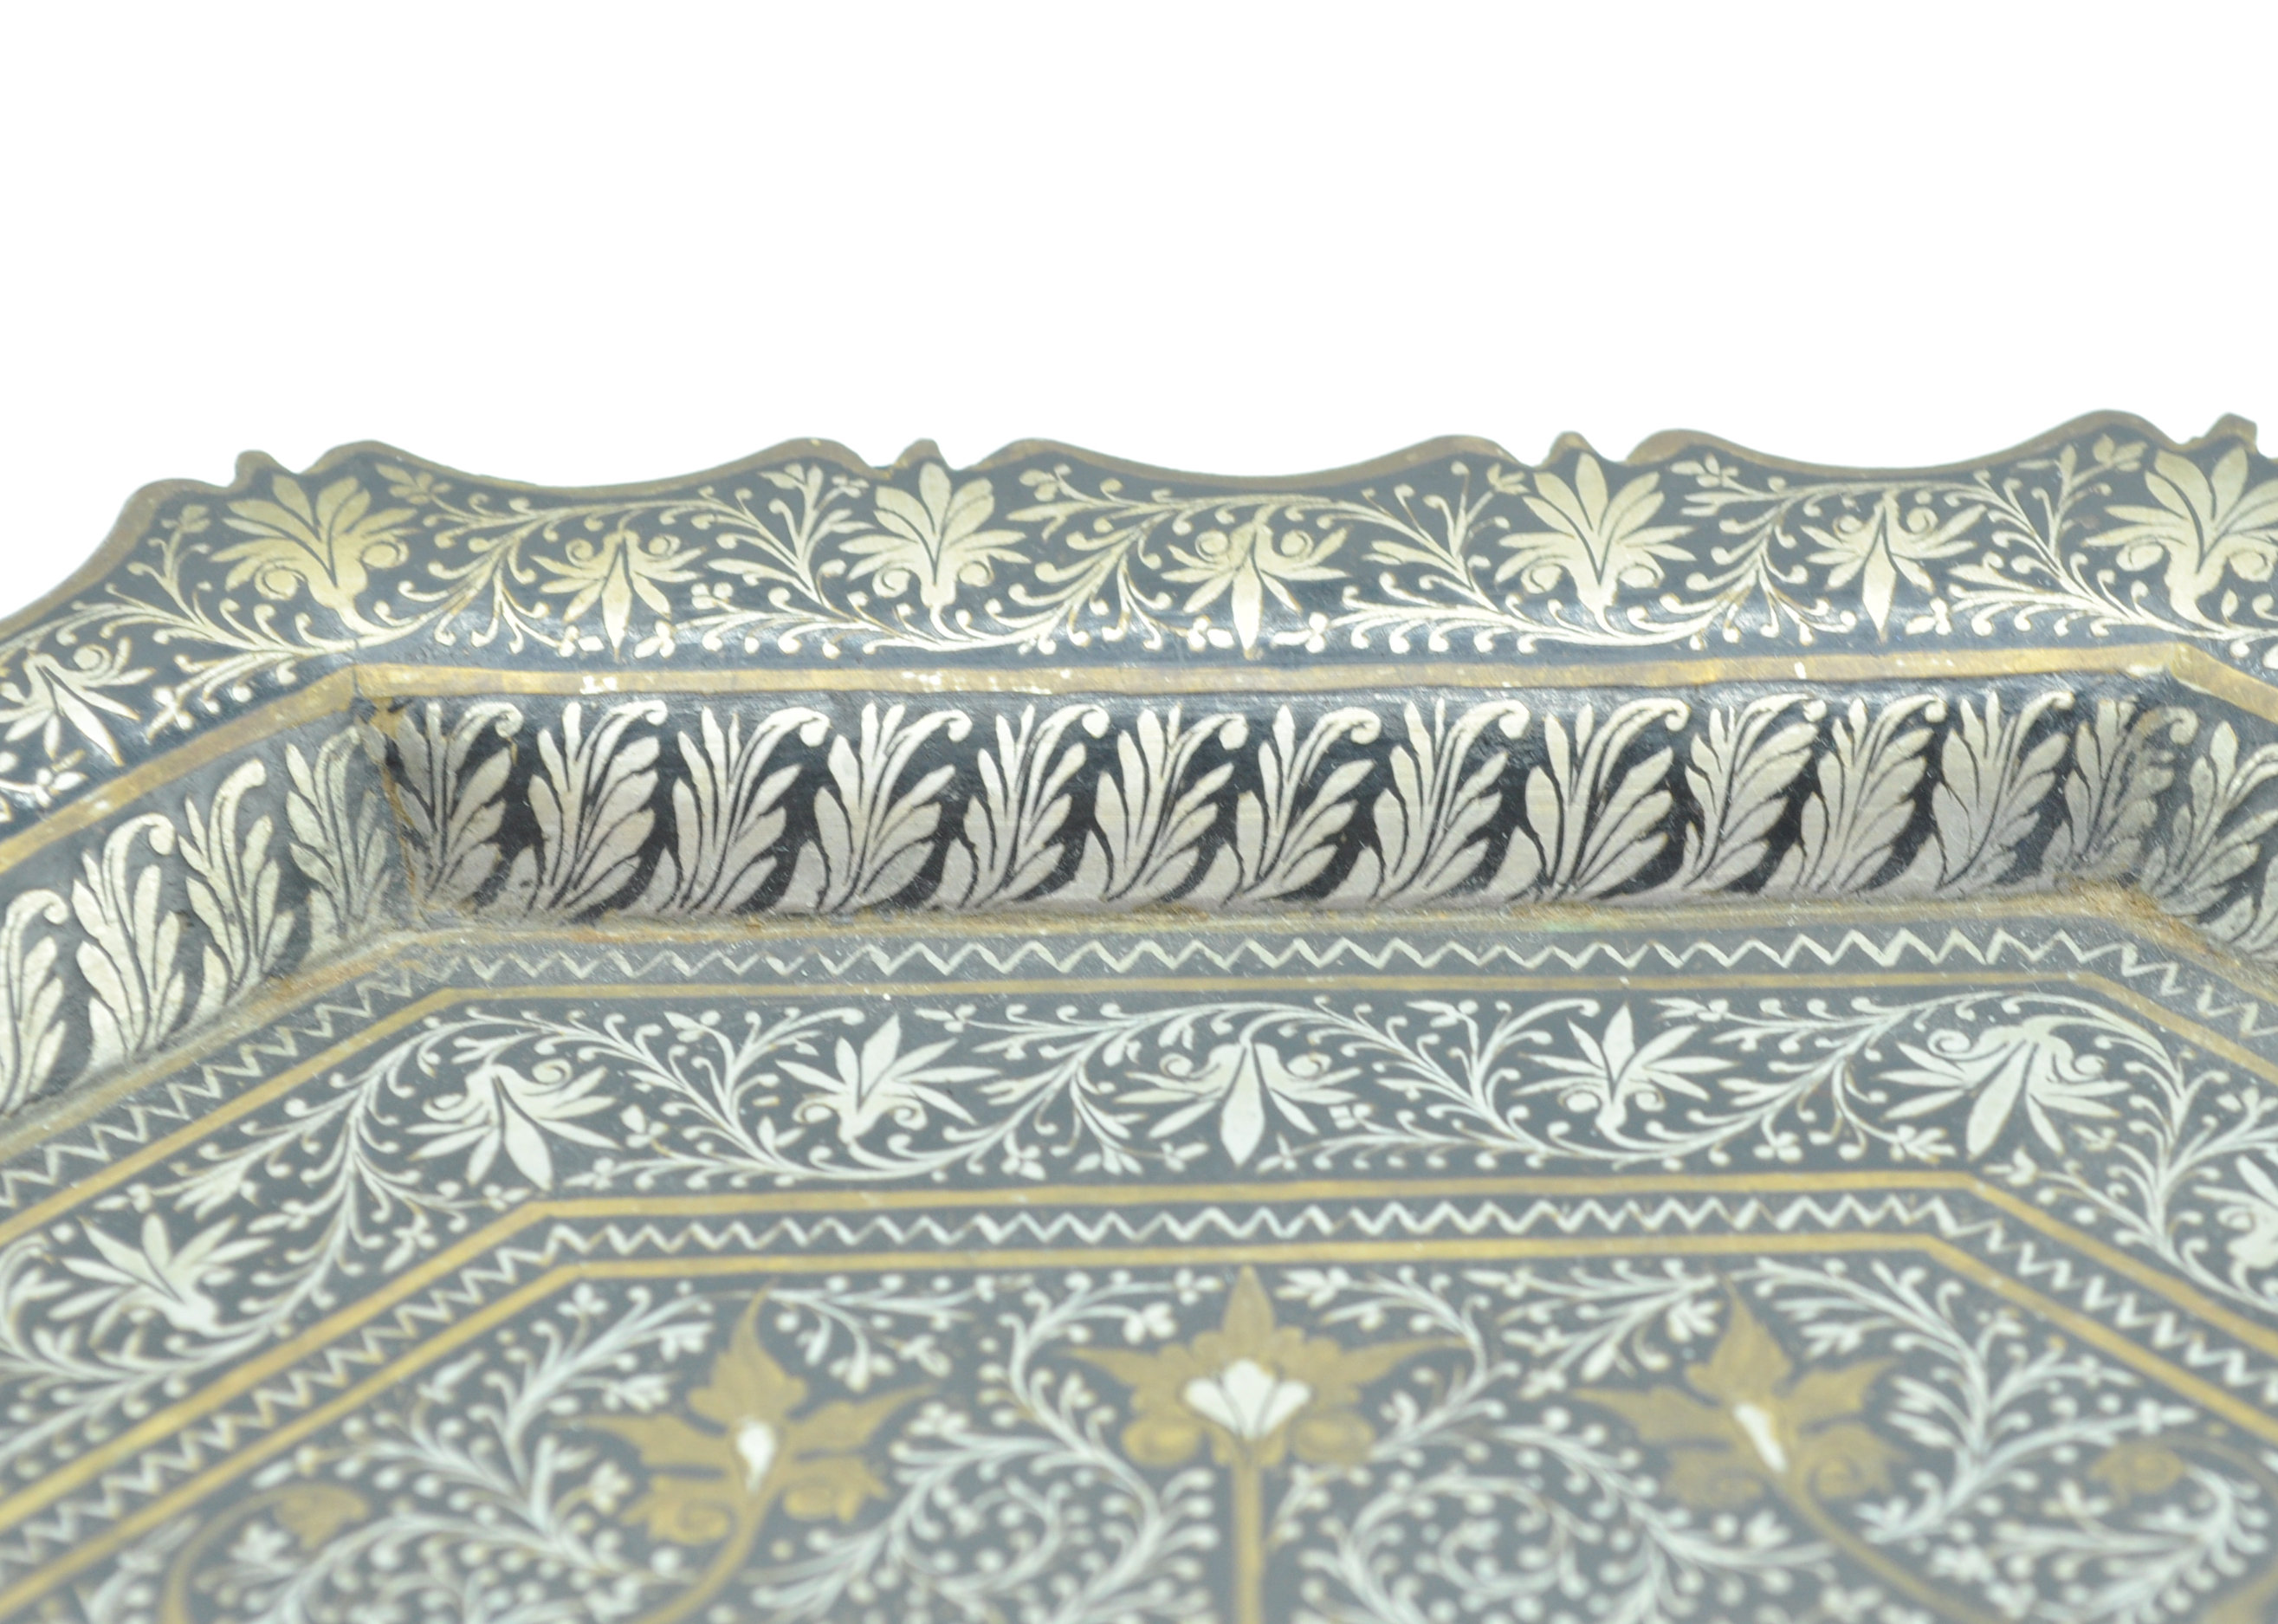 ISLAMIC SILVER PLATE AND BRASS CARD TRAY SALVER - Image 2 of 6